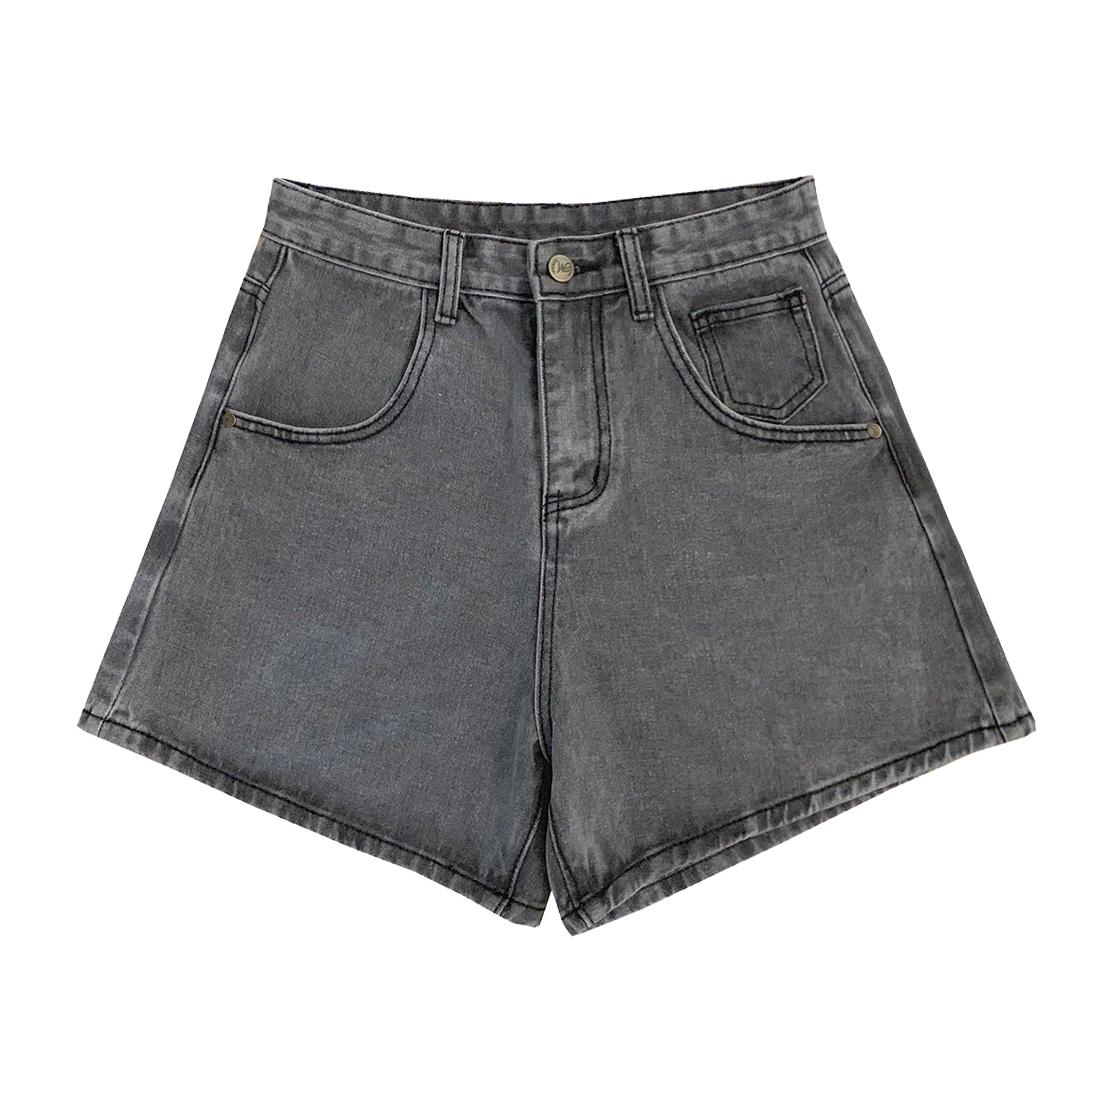 Lady's Small Rivets Denim Shorts